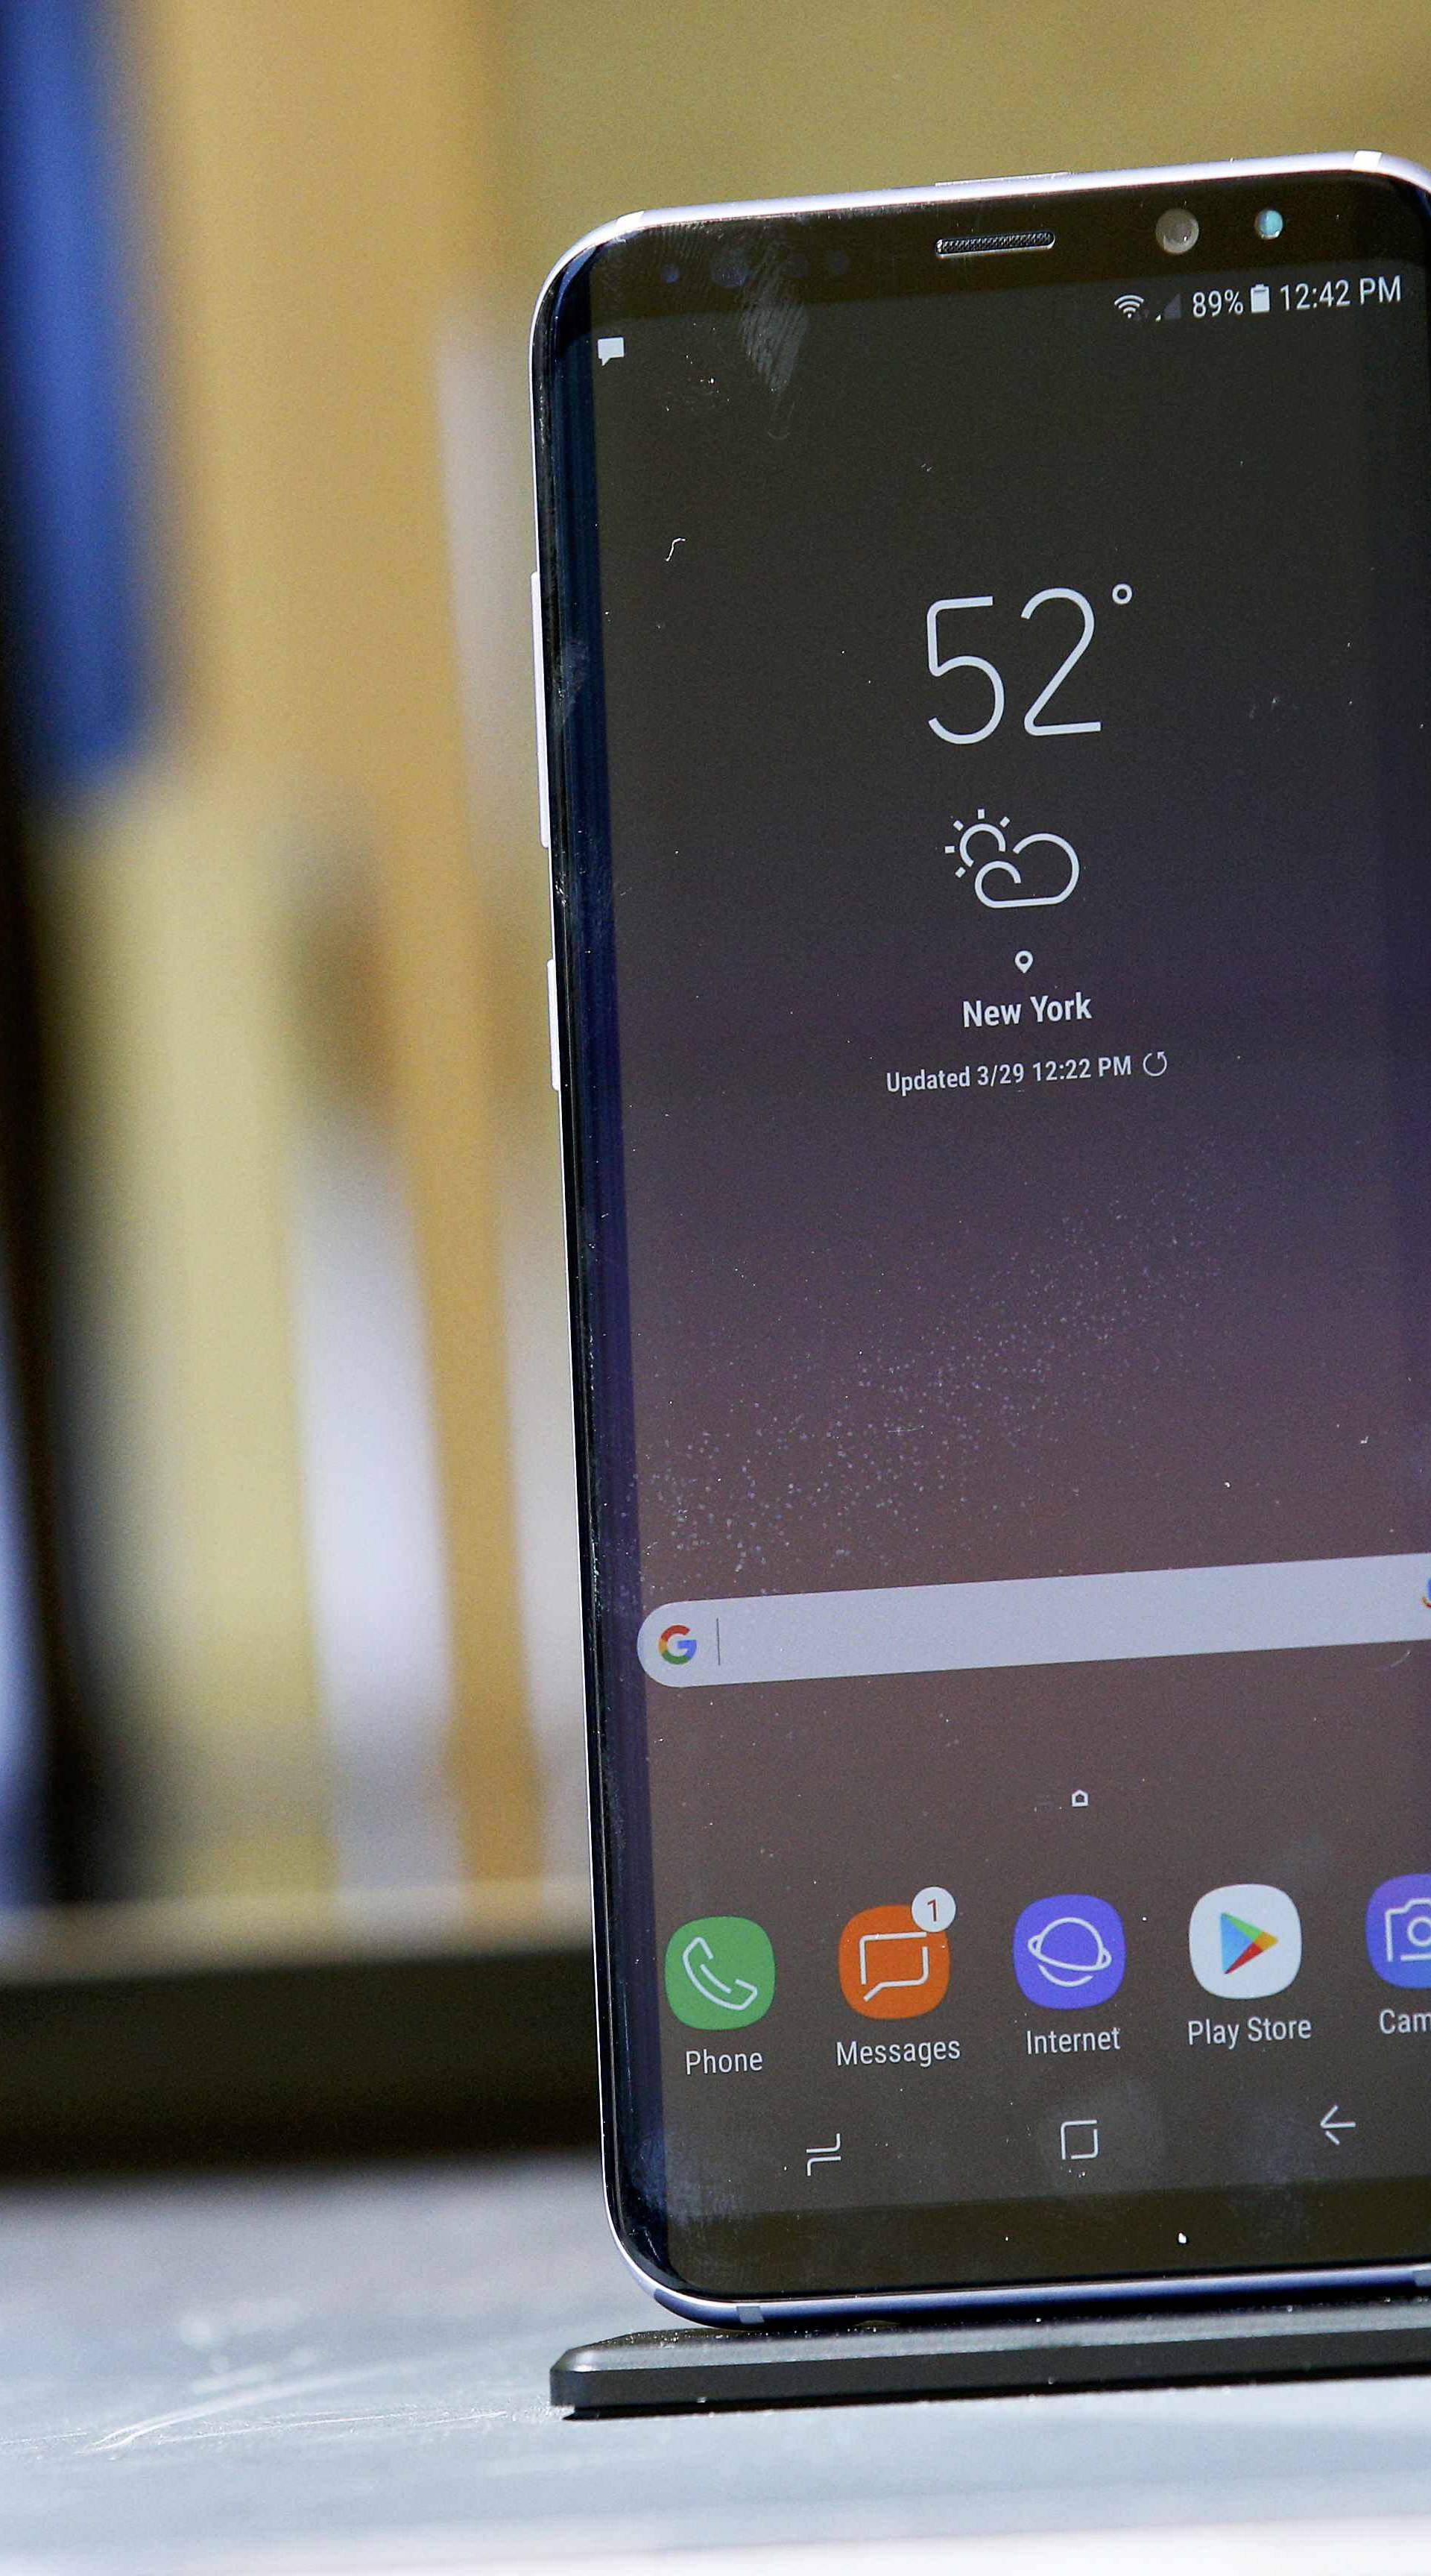 A Samsung Galaxy S8+ smartphone is pictured at the introduction of the Galaxy S8 and S8+ smartphones during the Samsung Unpacked event in New York City